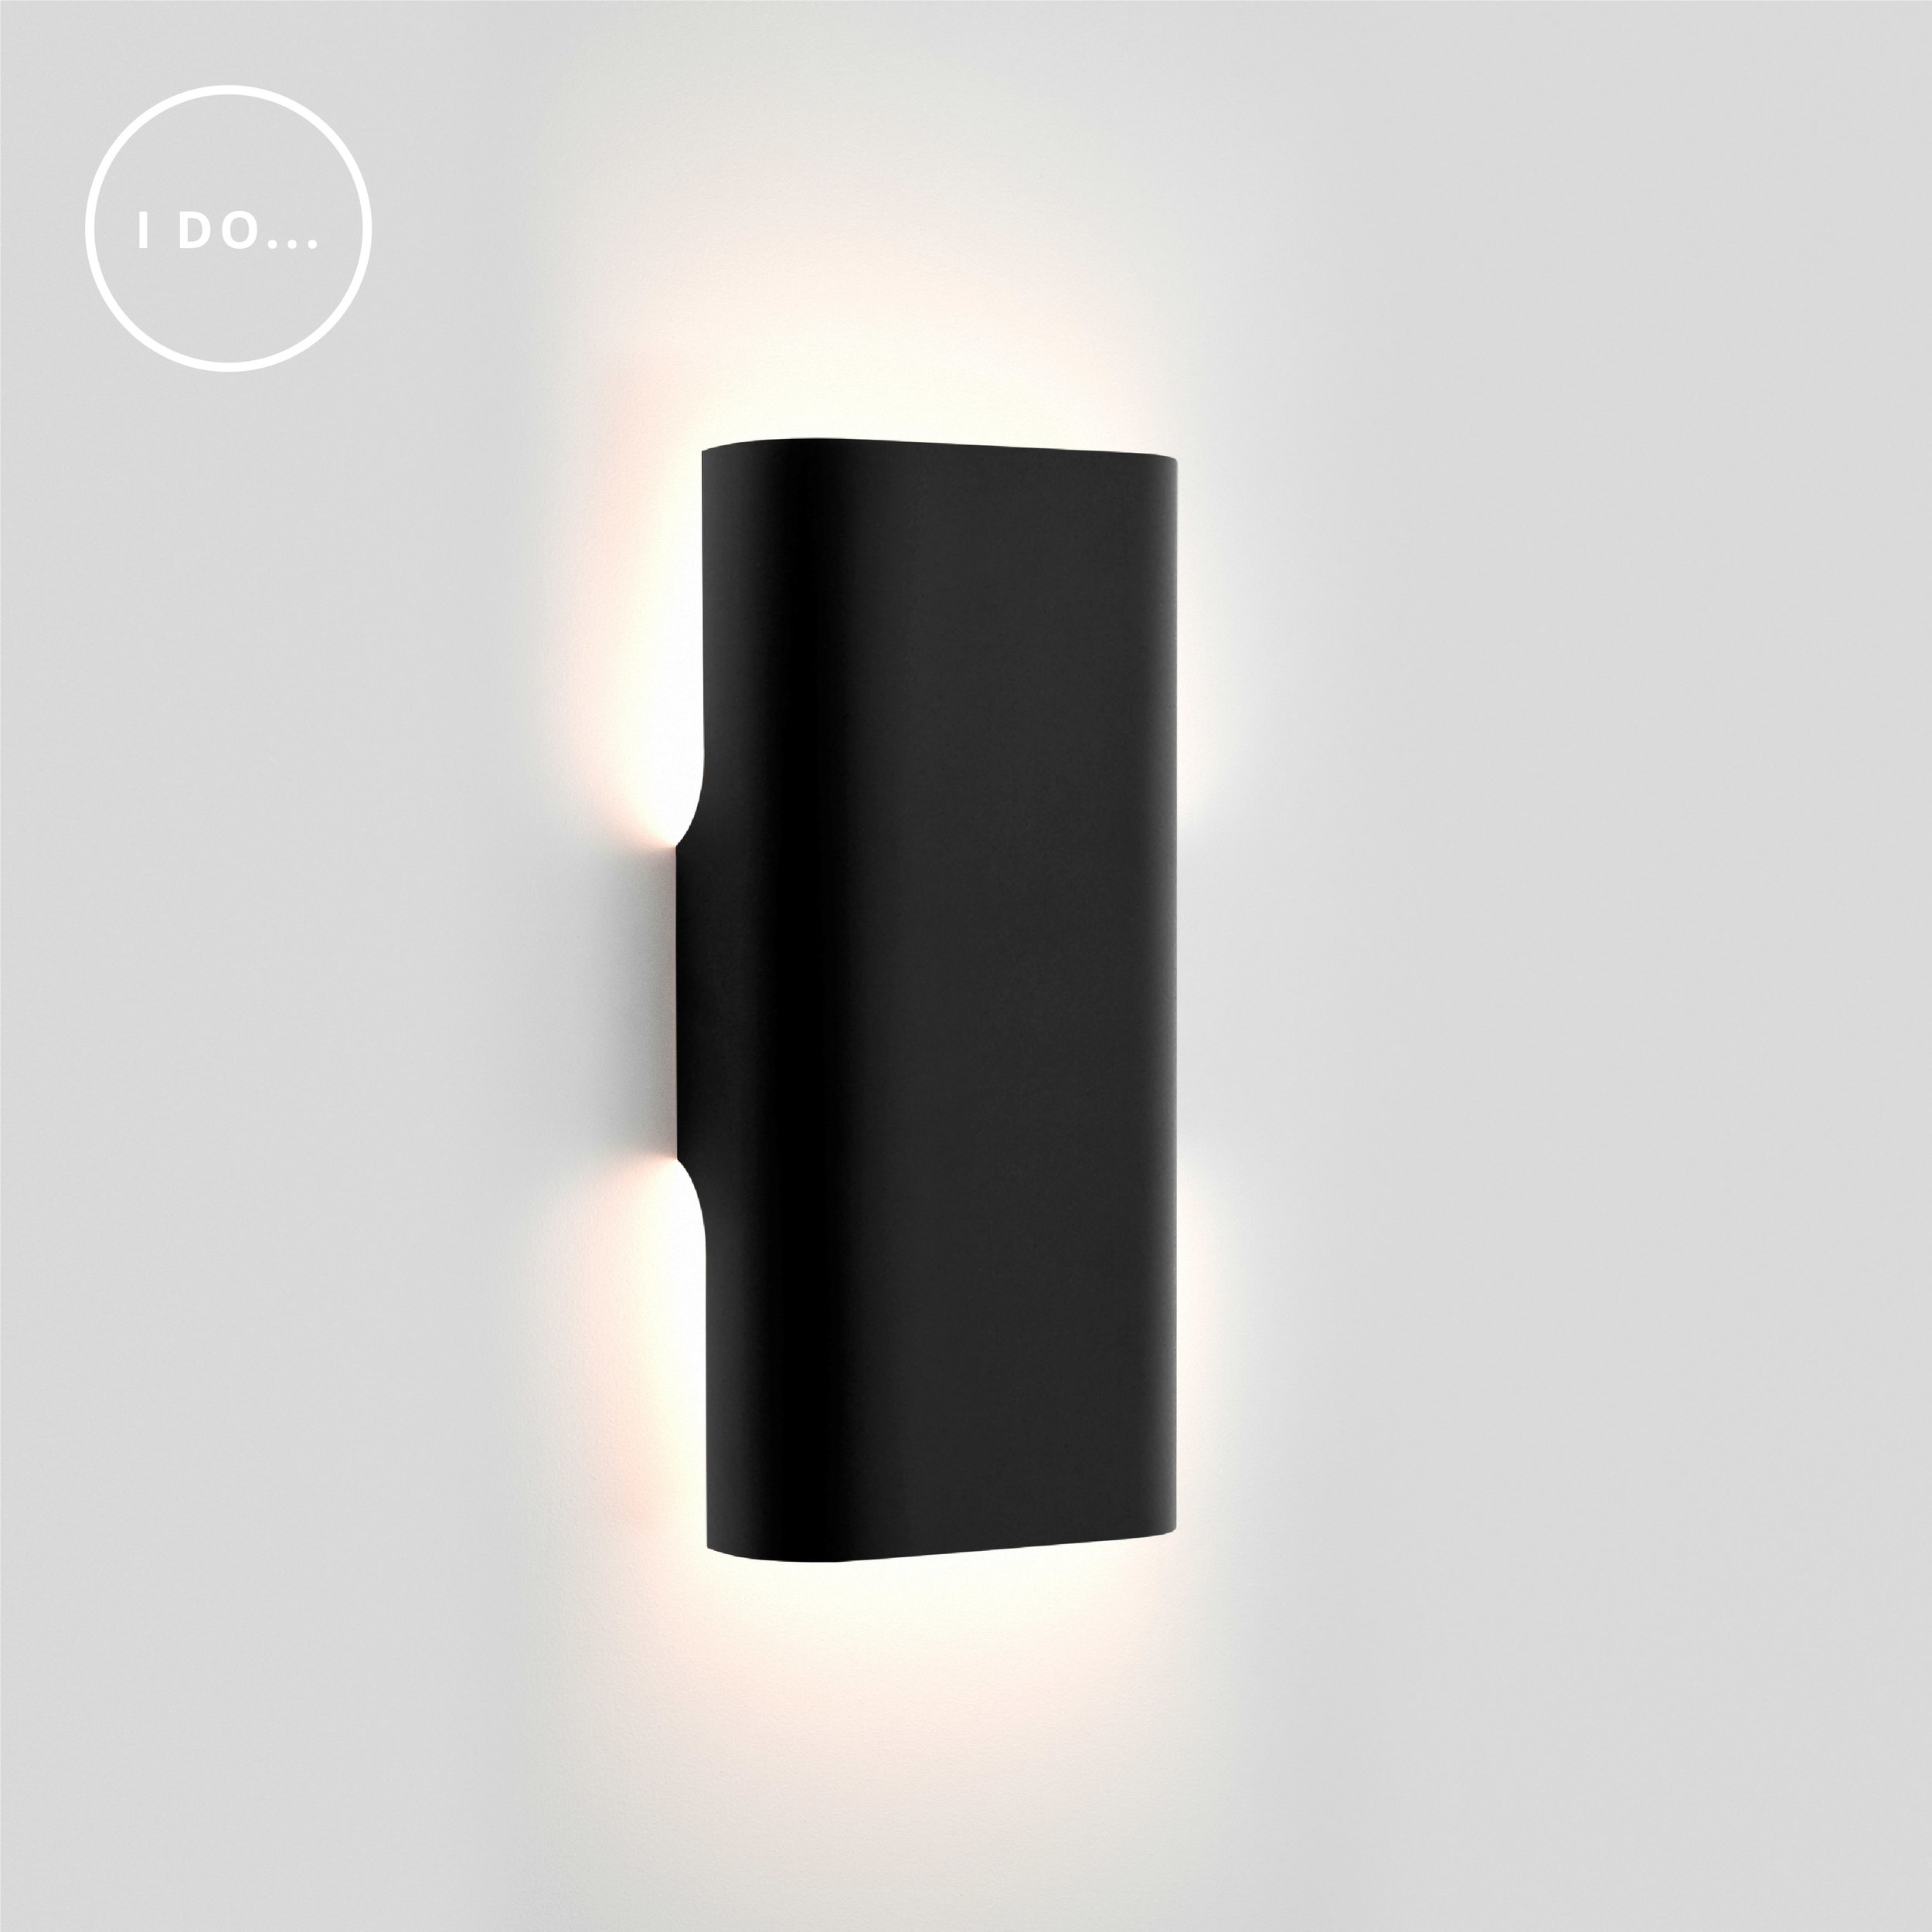 ISM Objects_I Do Up Down Large flat black 2_Wall_WT.jpg